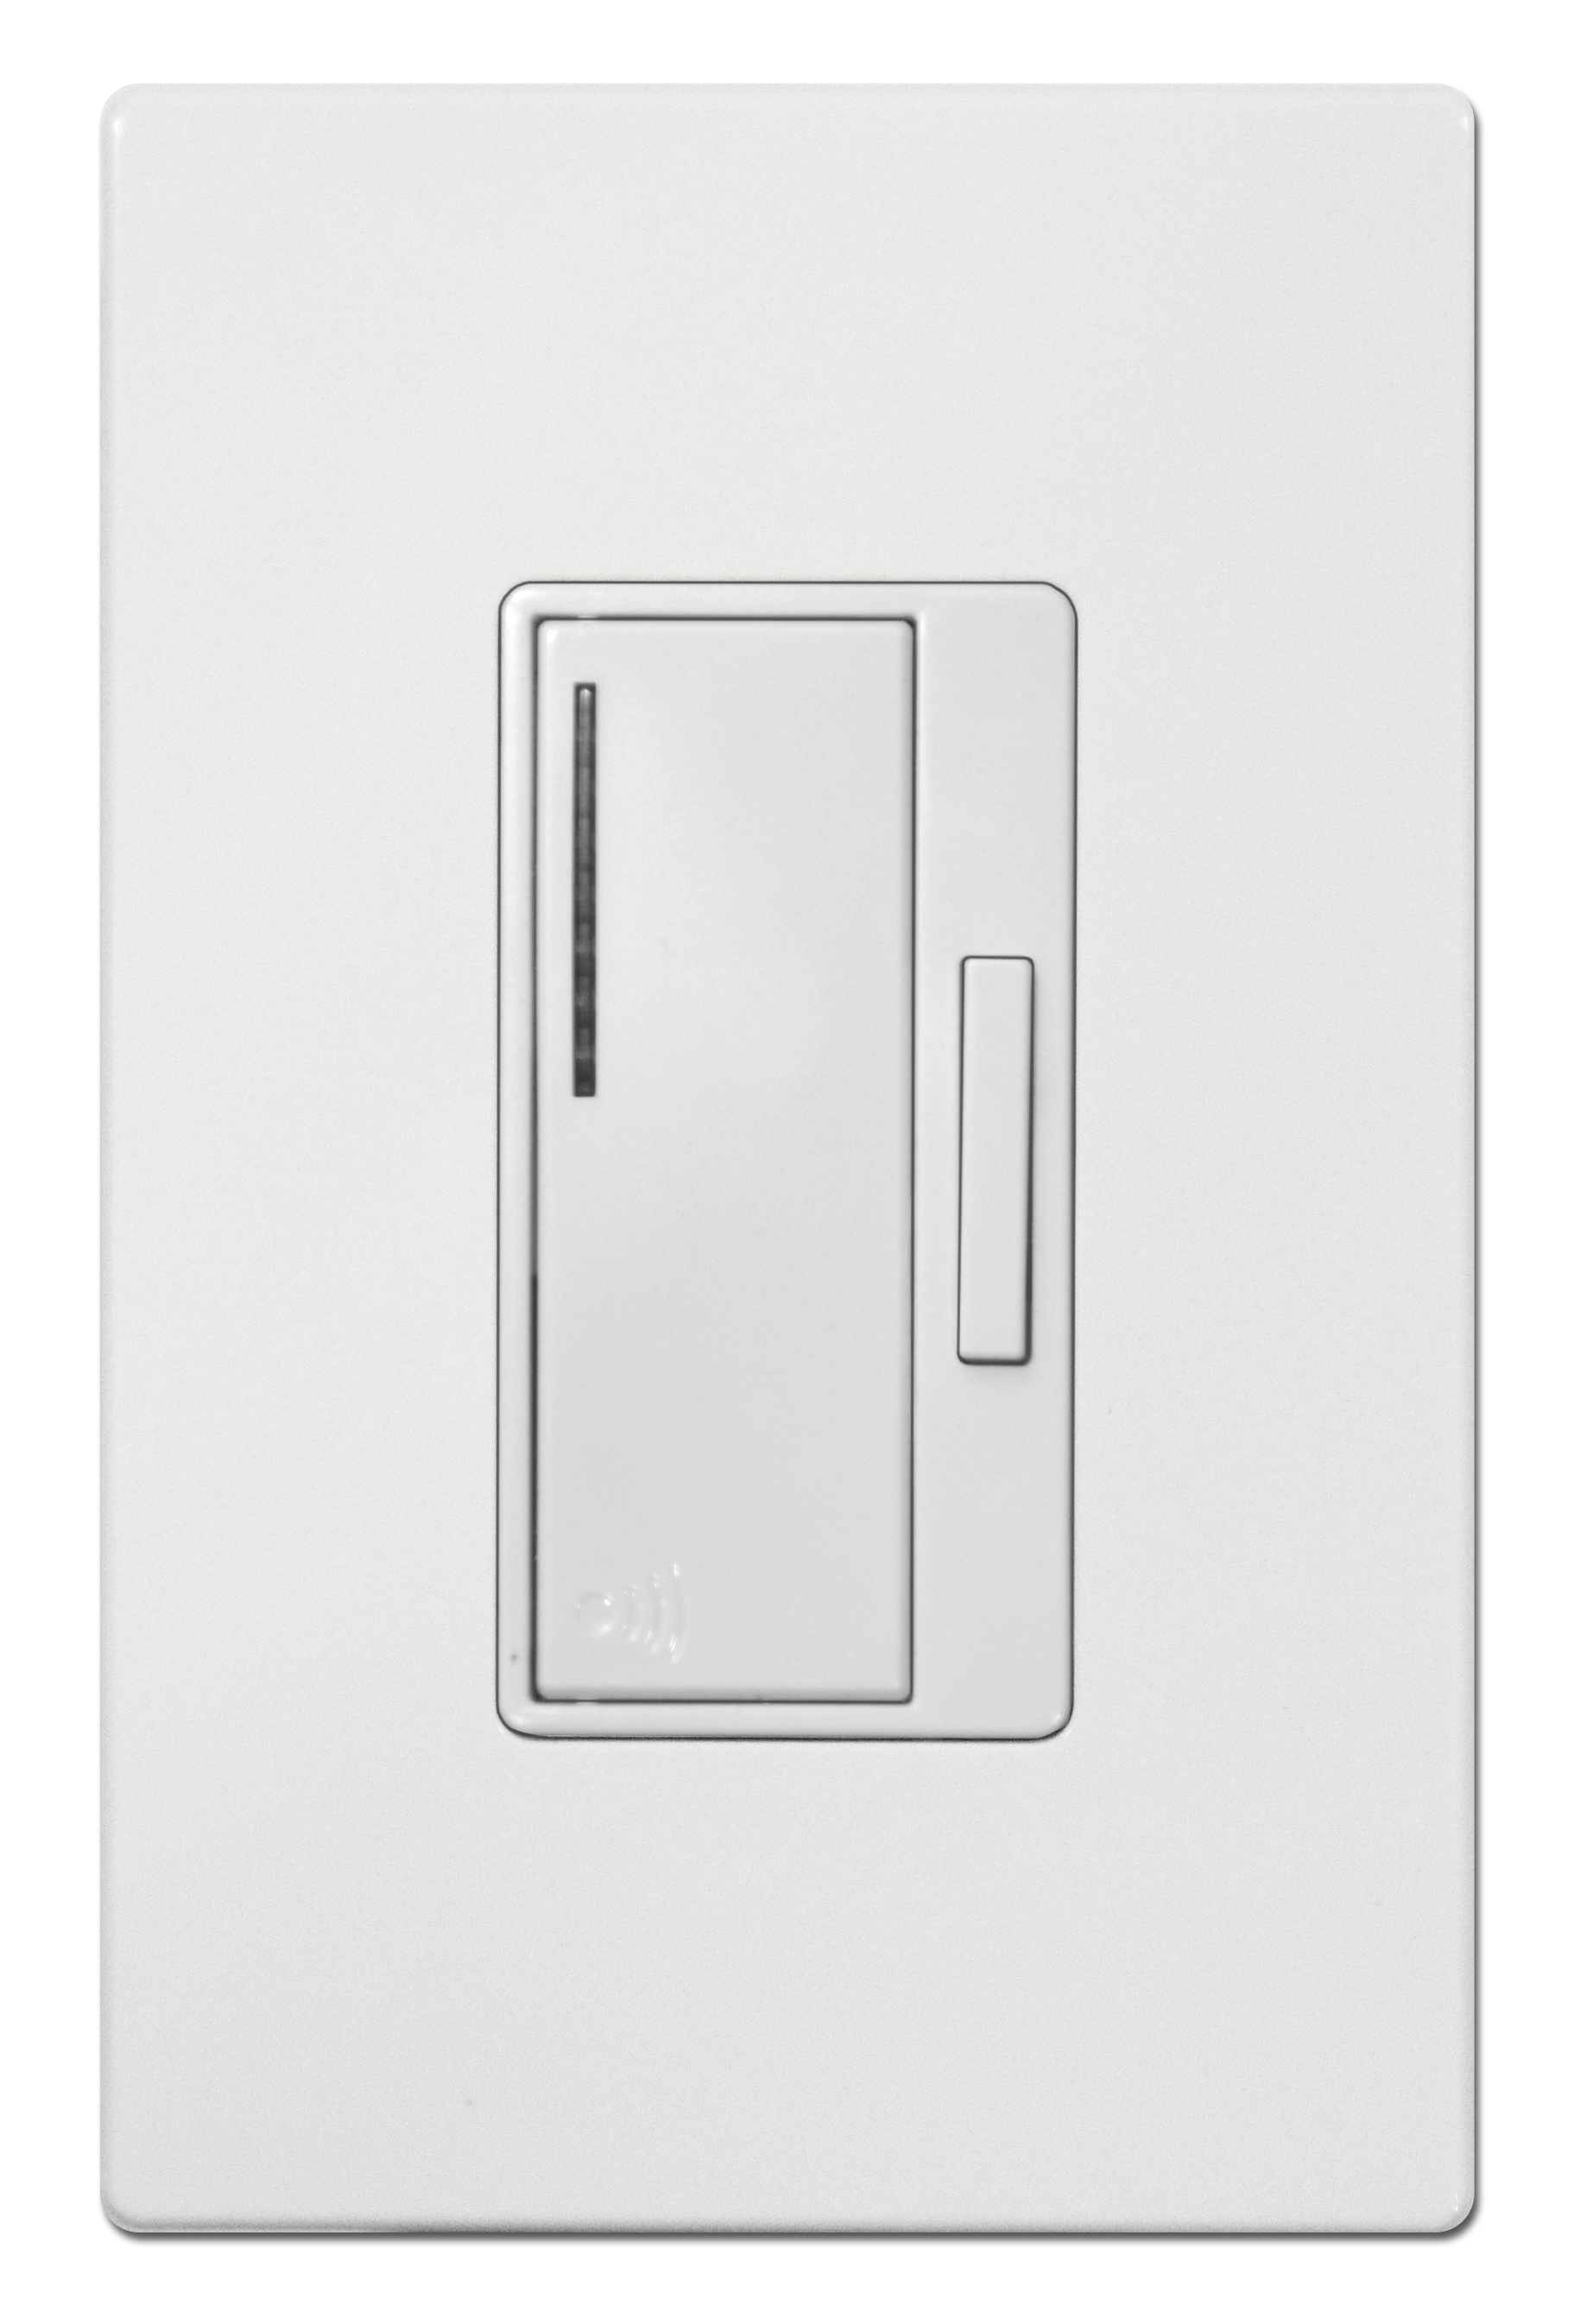 ClareVue-Dimmer-04-15-15.png